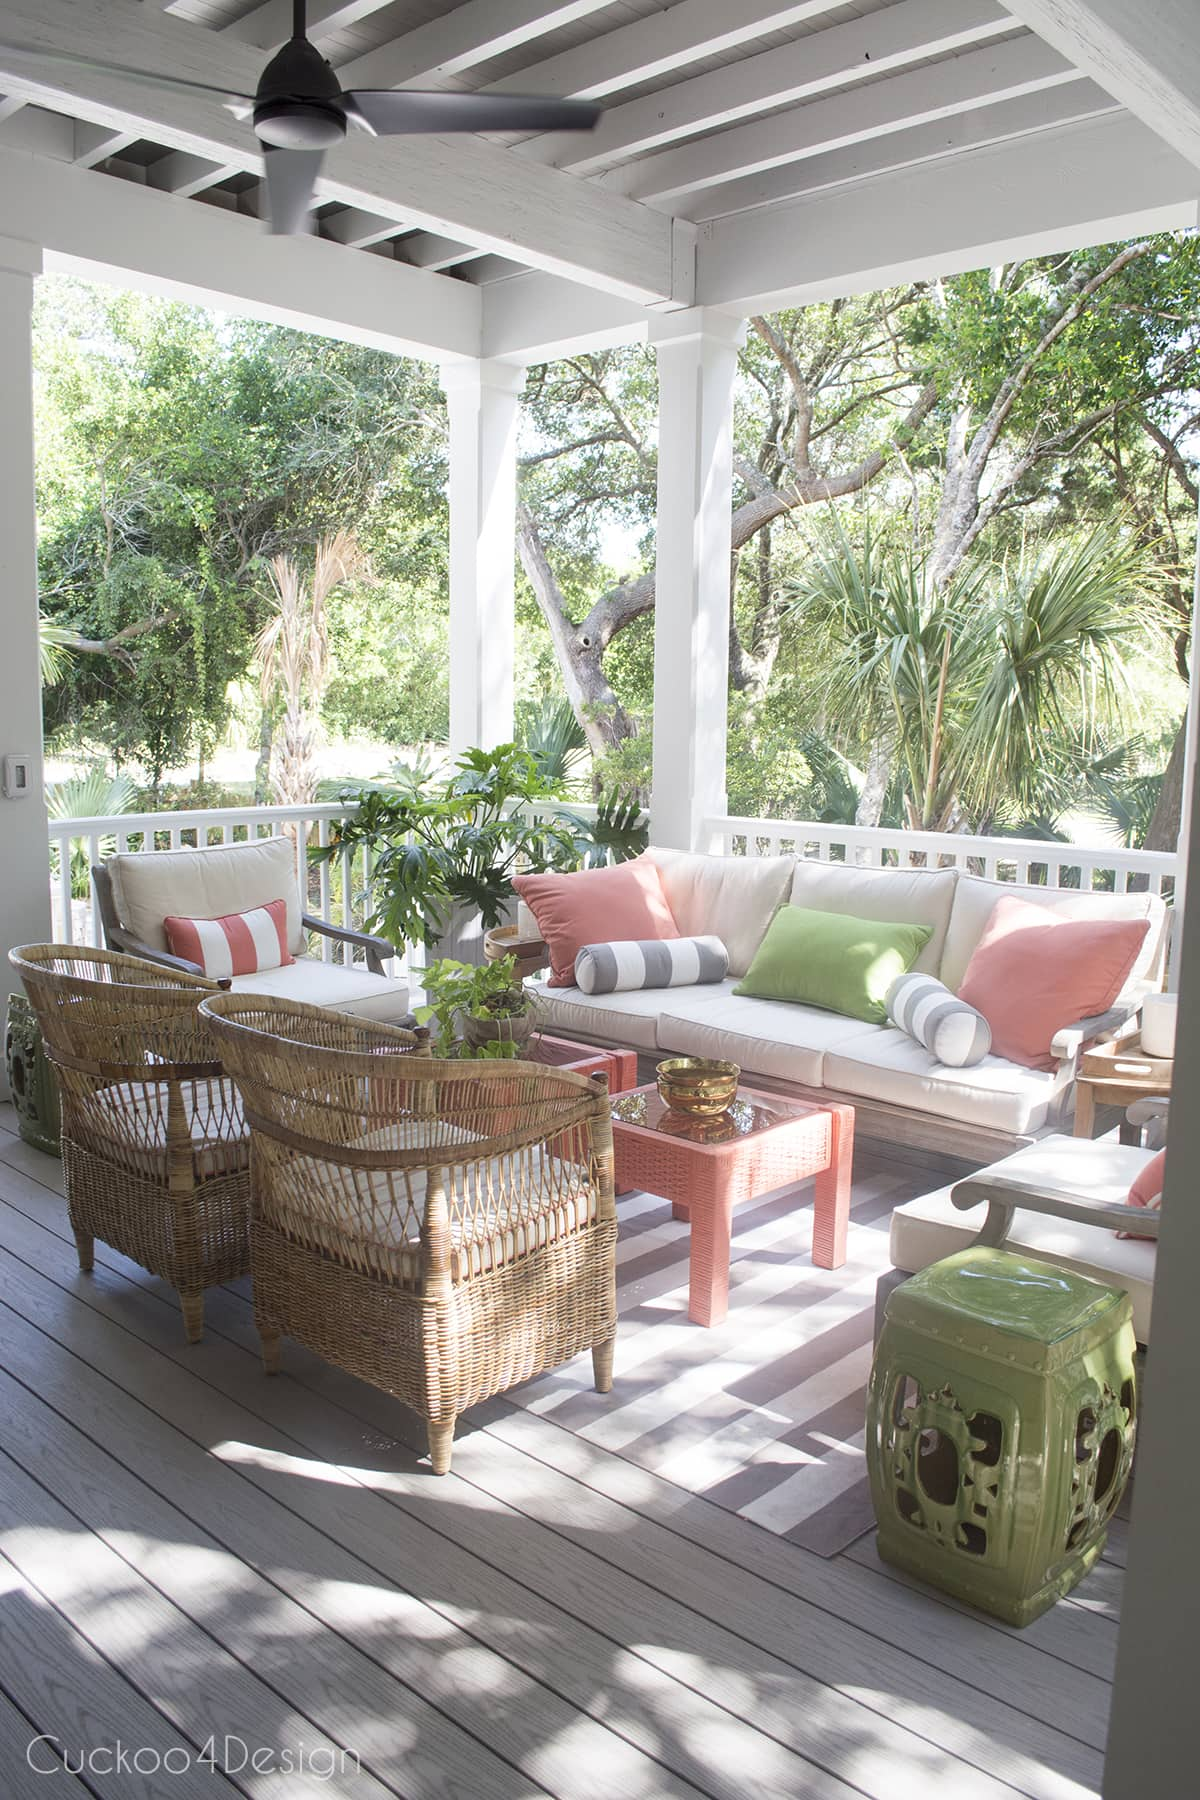 Southern living idea house 2017 part 1 cuckoo4design - Tropical outdoor kitchen designs ...